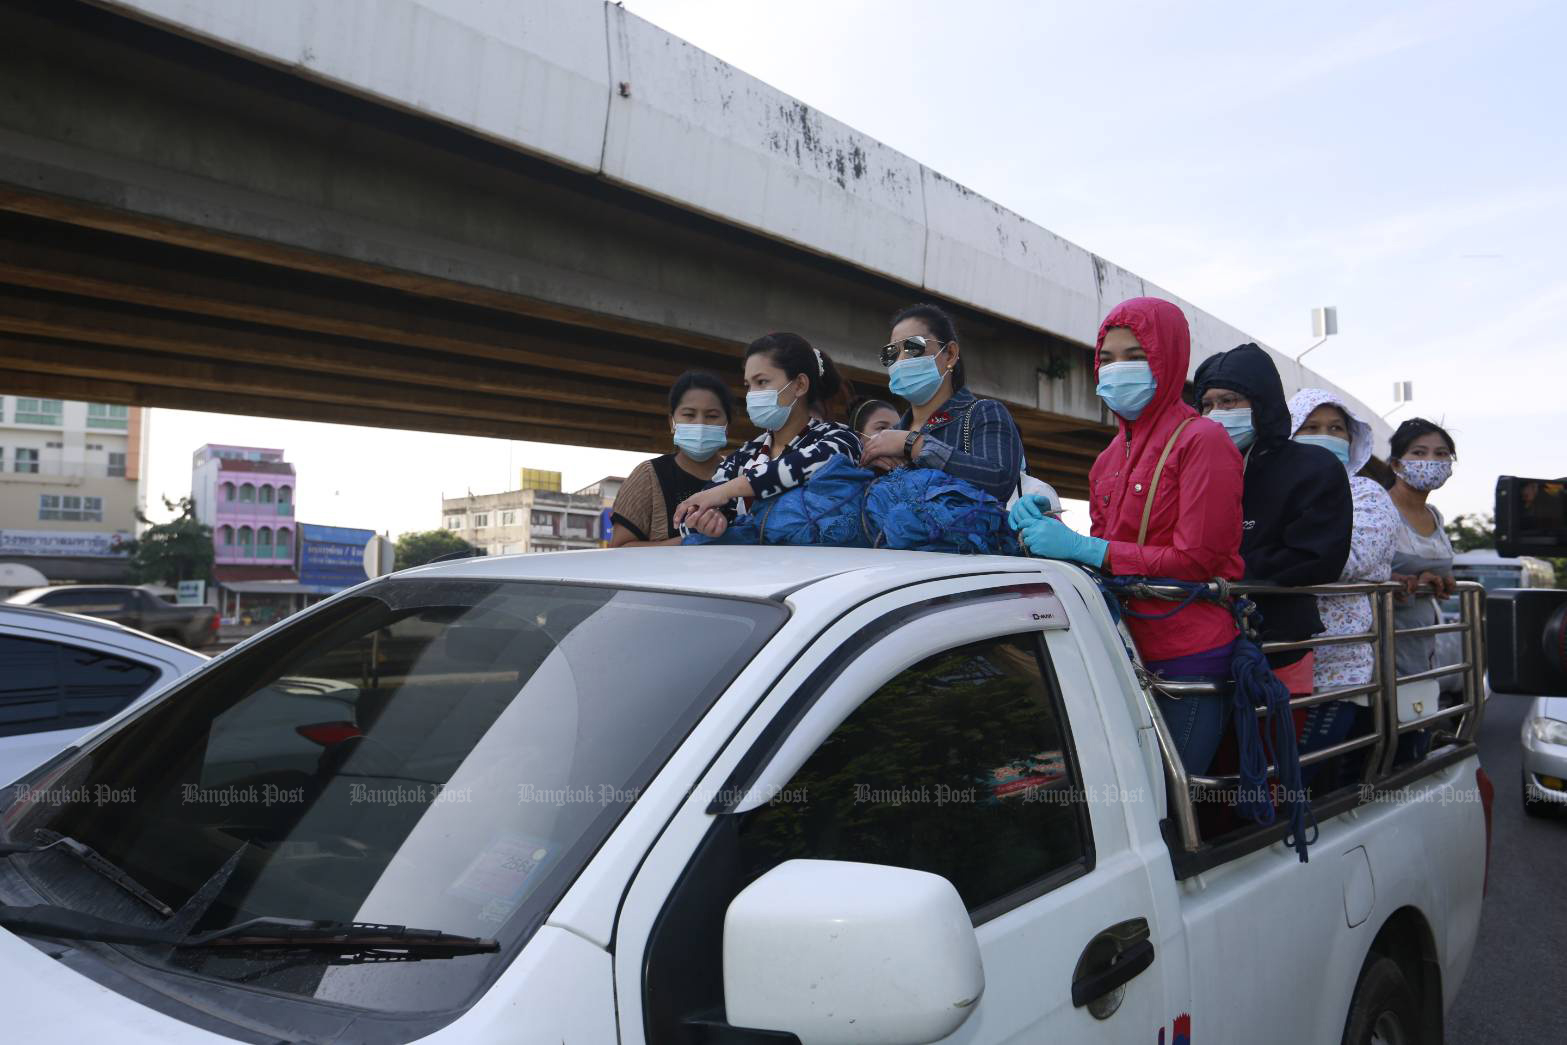 Workers ride on a pickup truck in Muang district of Samut Sakhon on Sunday after the city was sealed to prevent the spread of the coronavirus. (Photo by Arnun Chonmahatrakool)